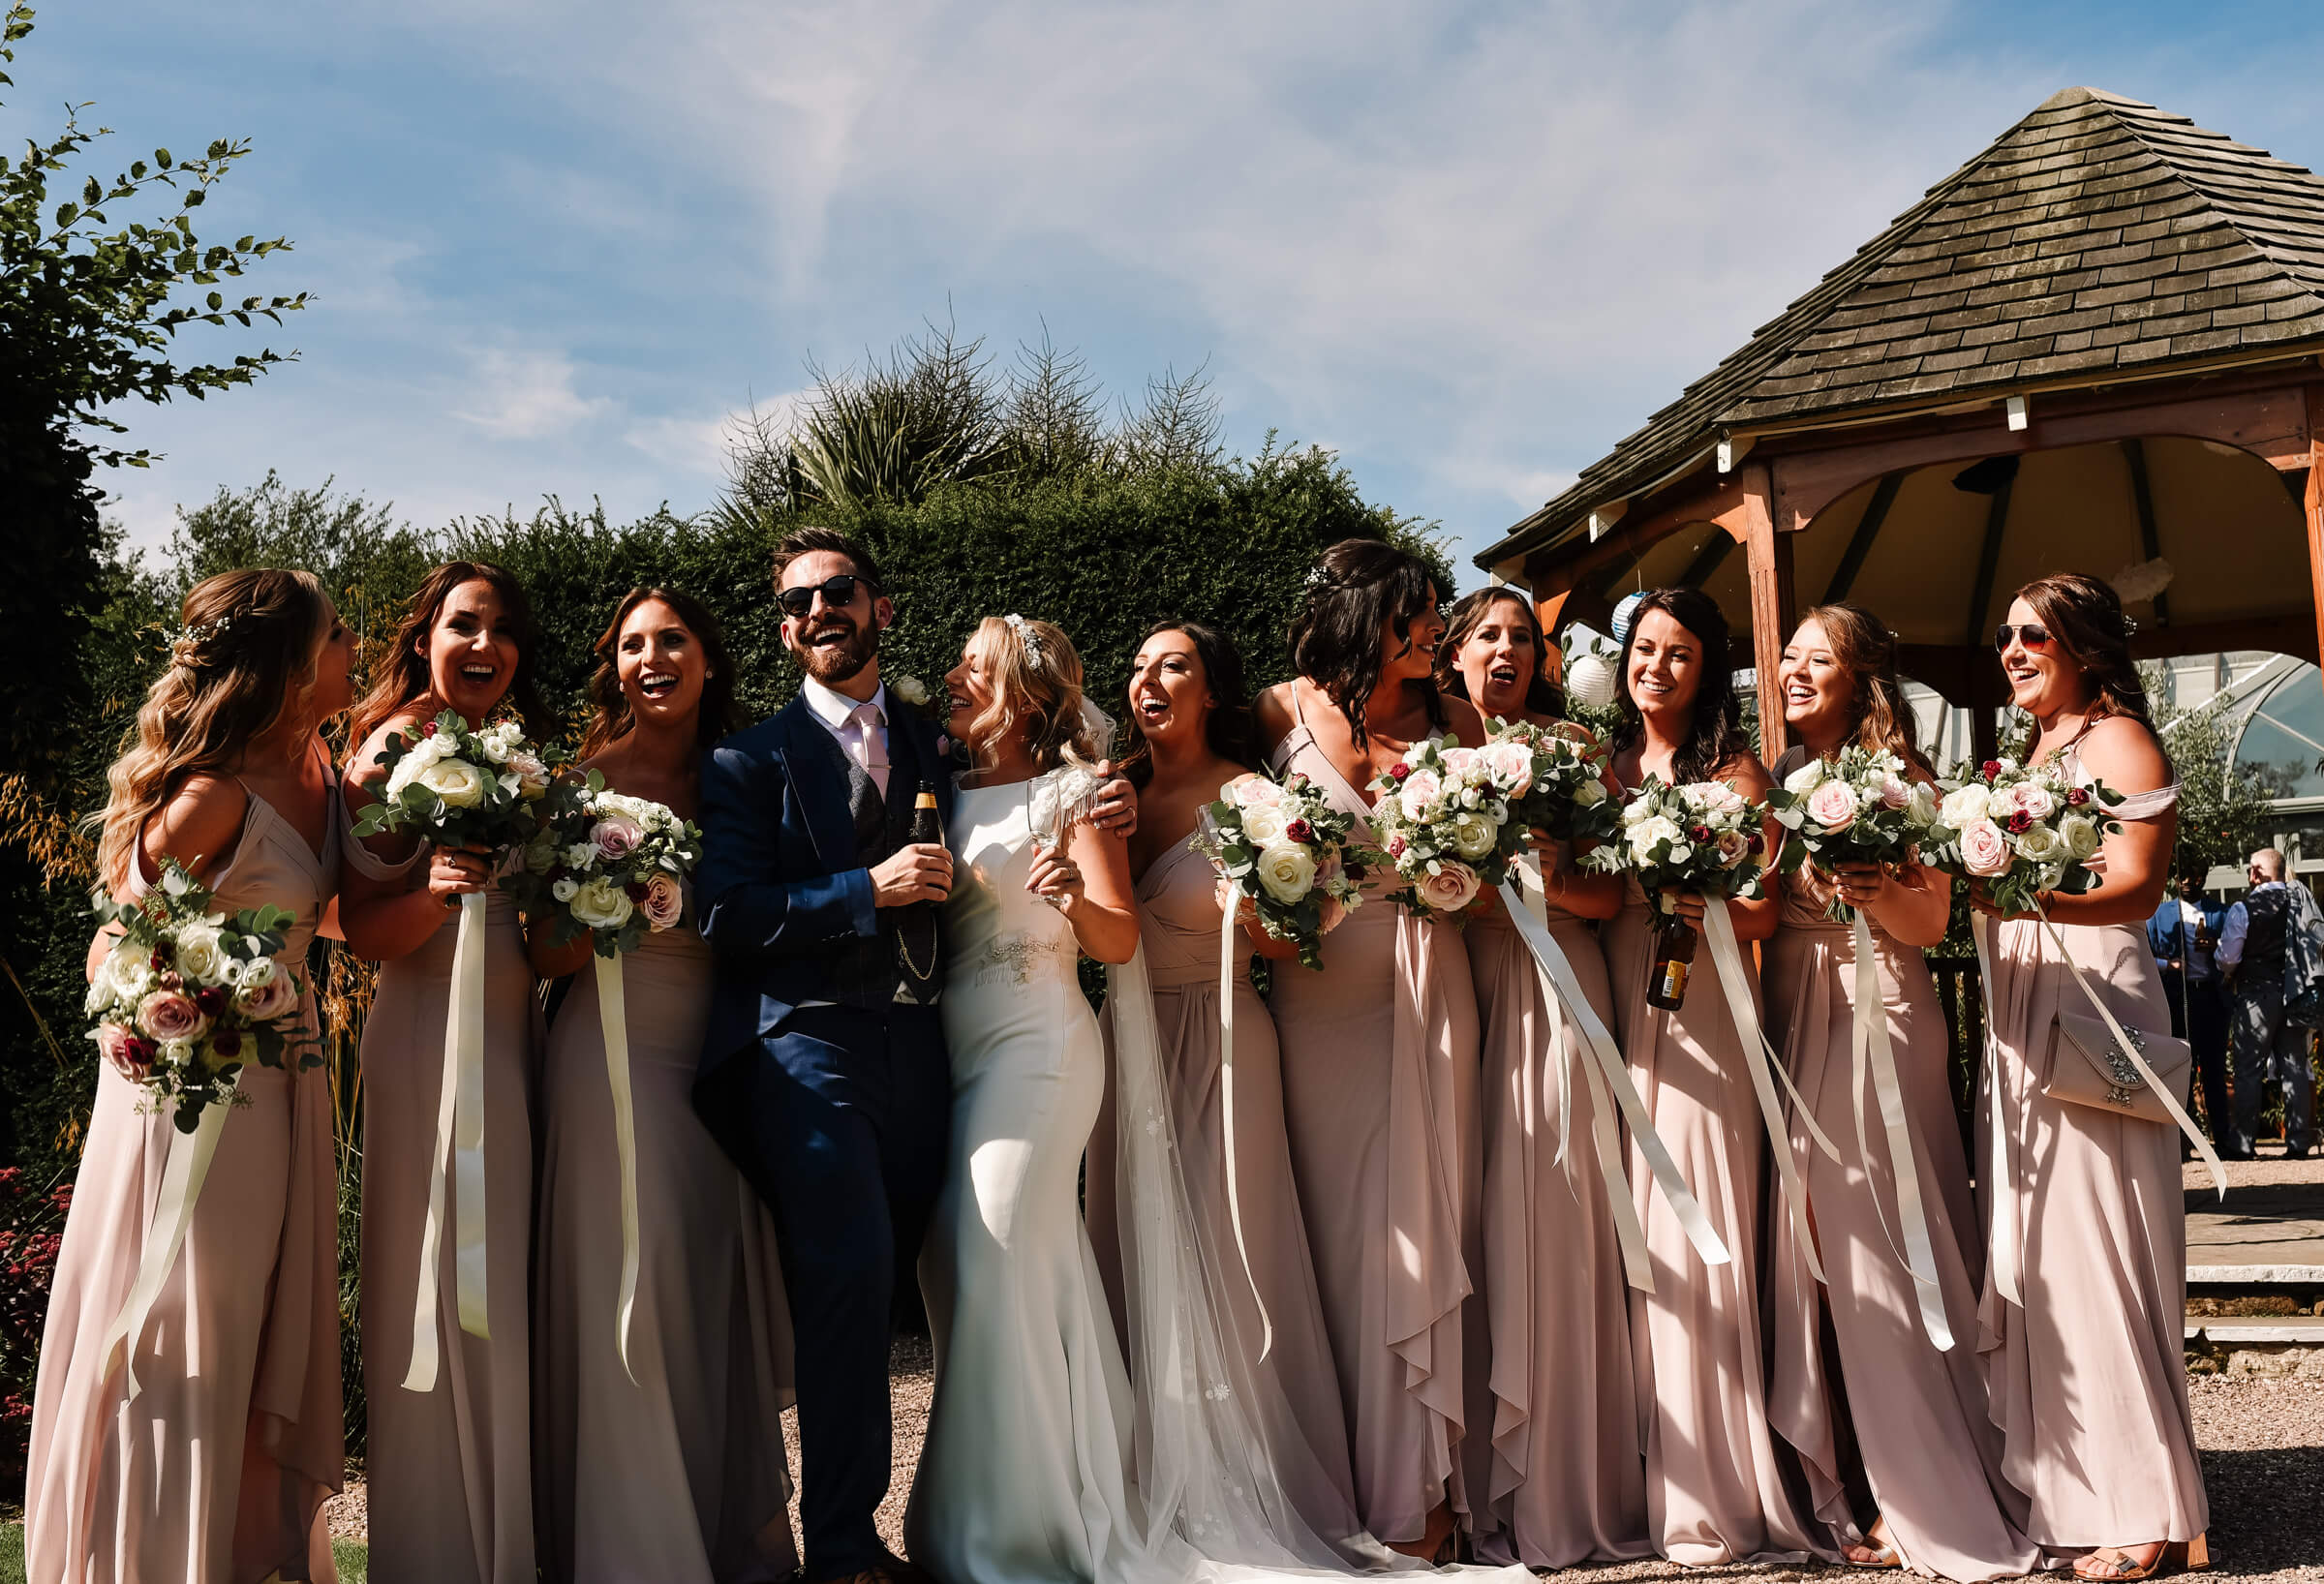 groom smiling with bride and bridesmaids